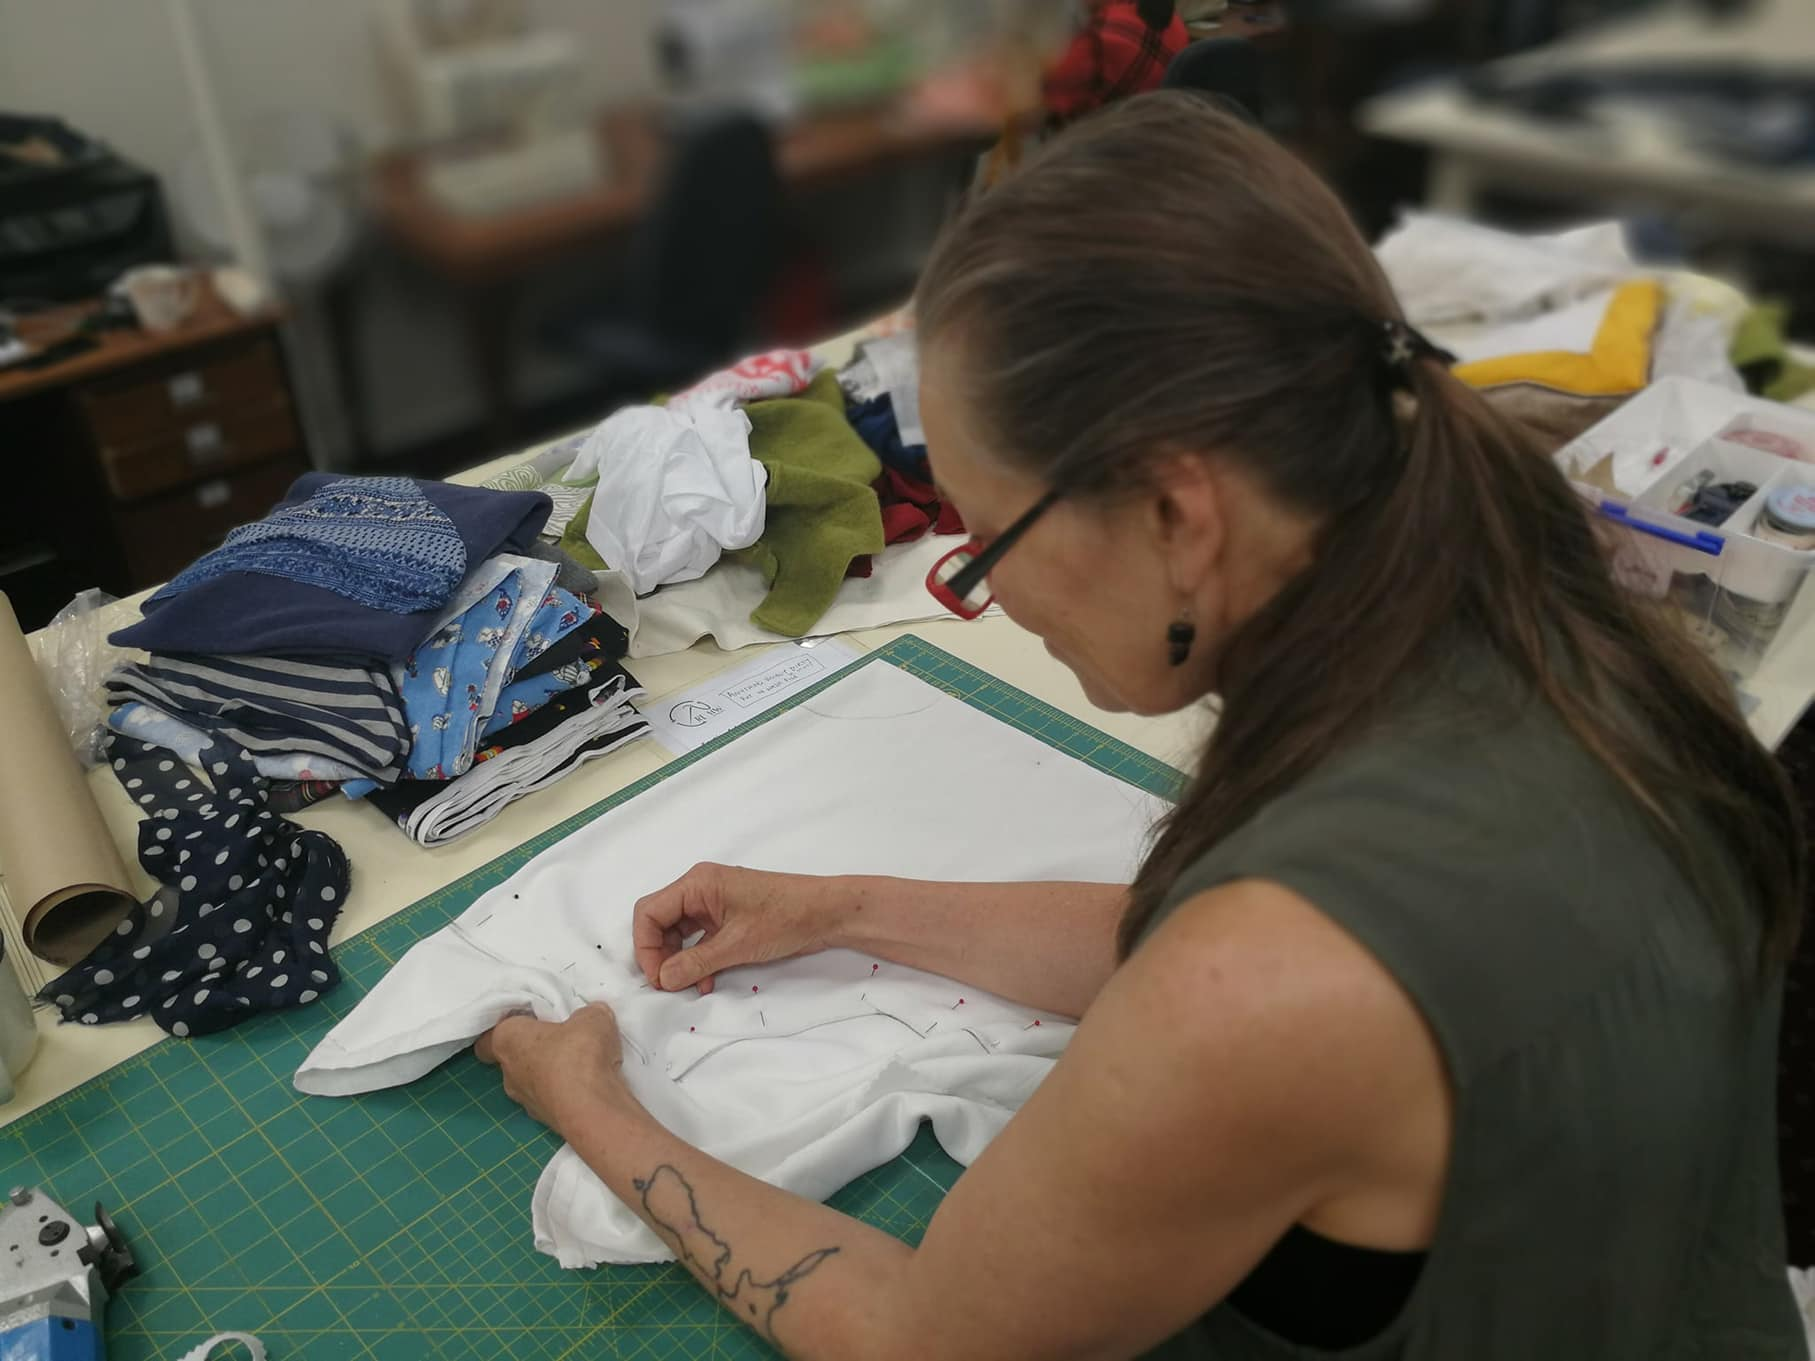 Vinnies Re Sew is an up-cycling, sustainable sewing initiative focused on re-purposing the textiles we can't sell in Vinnies Op Shops